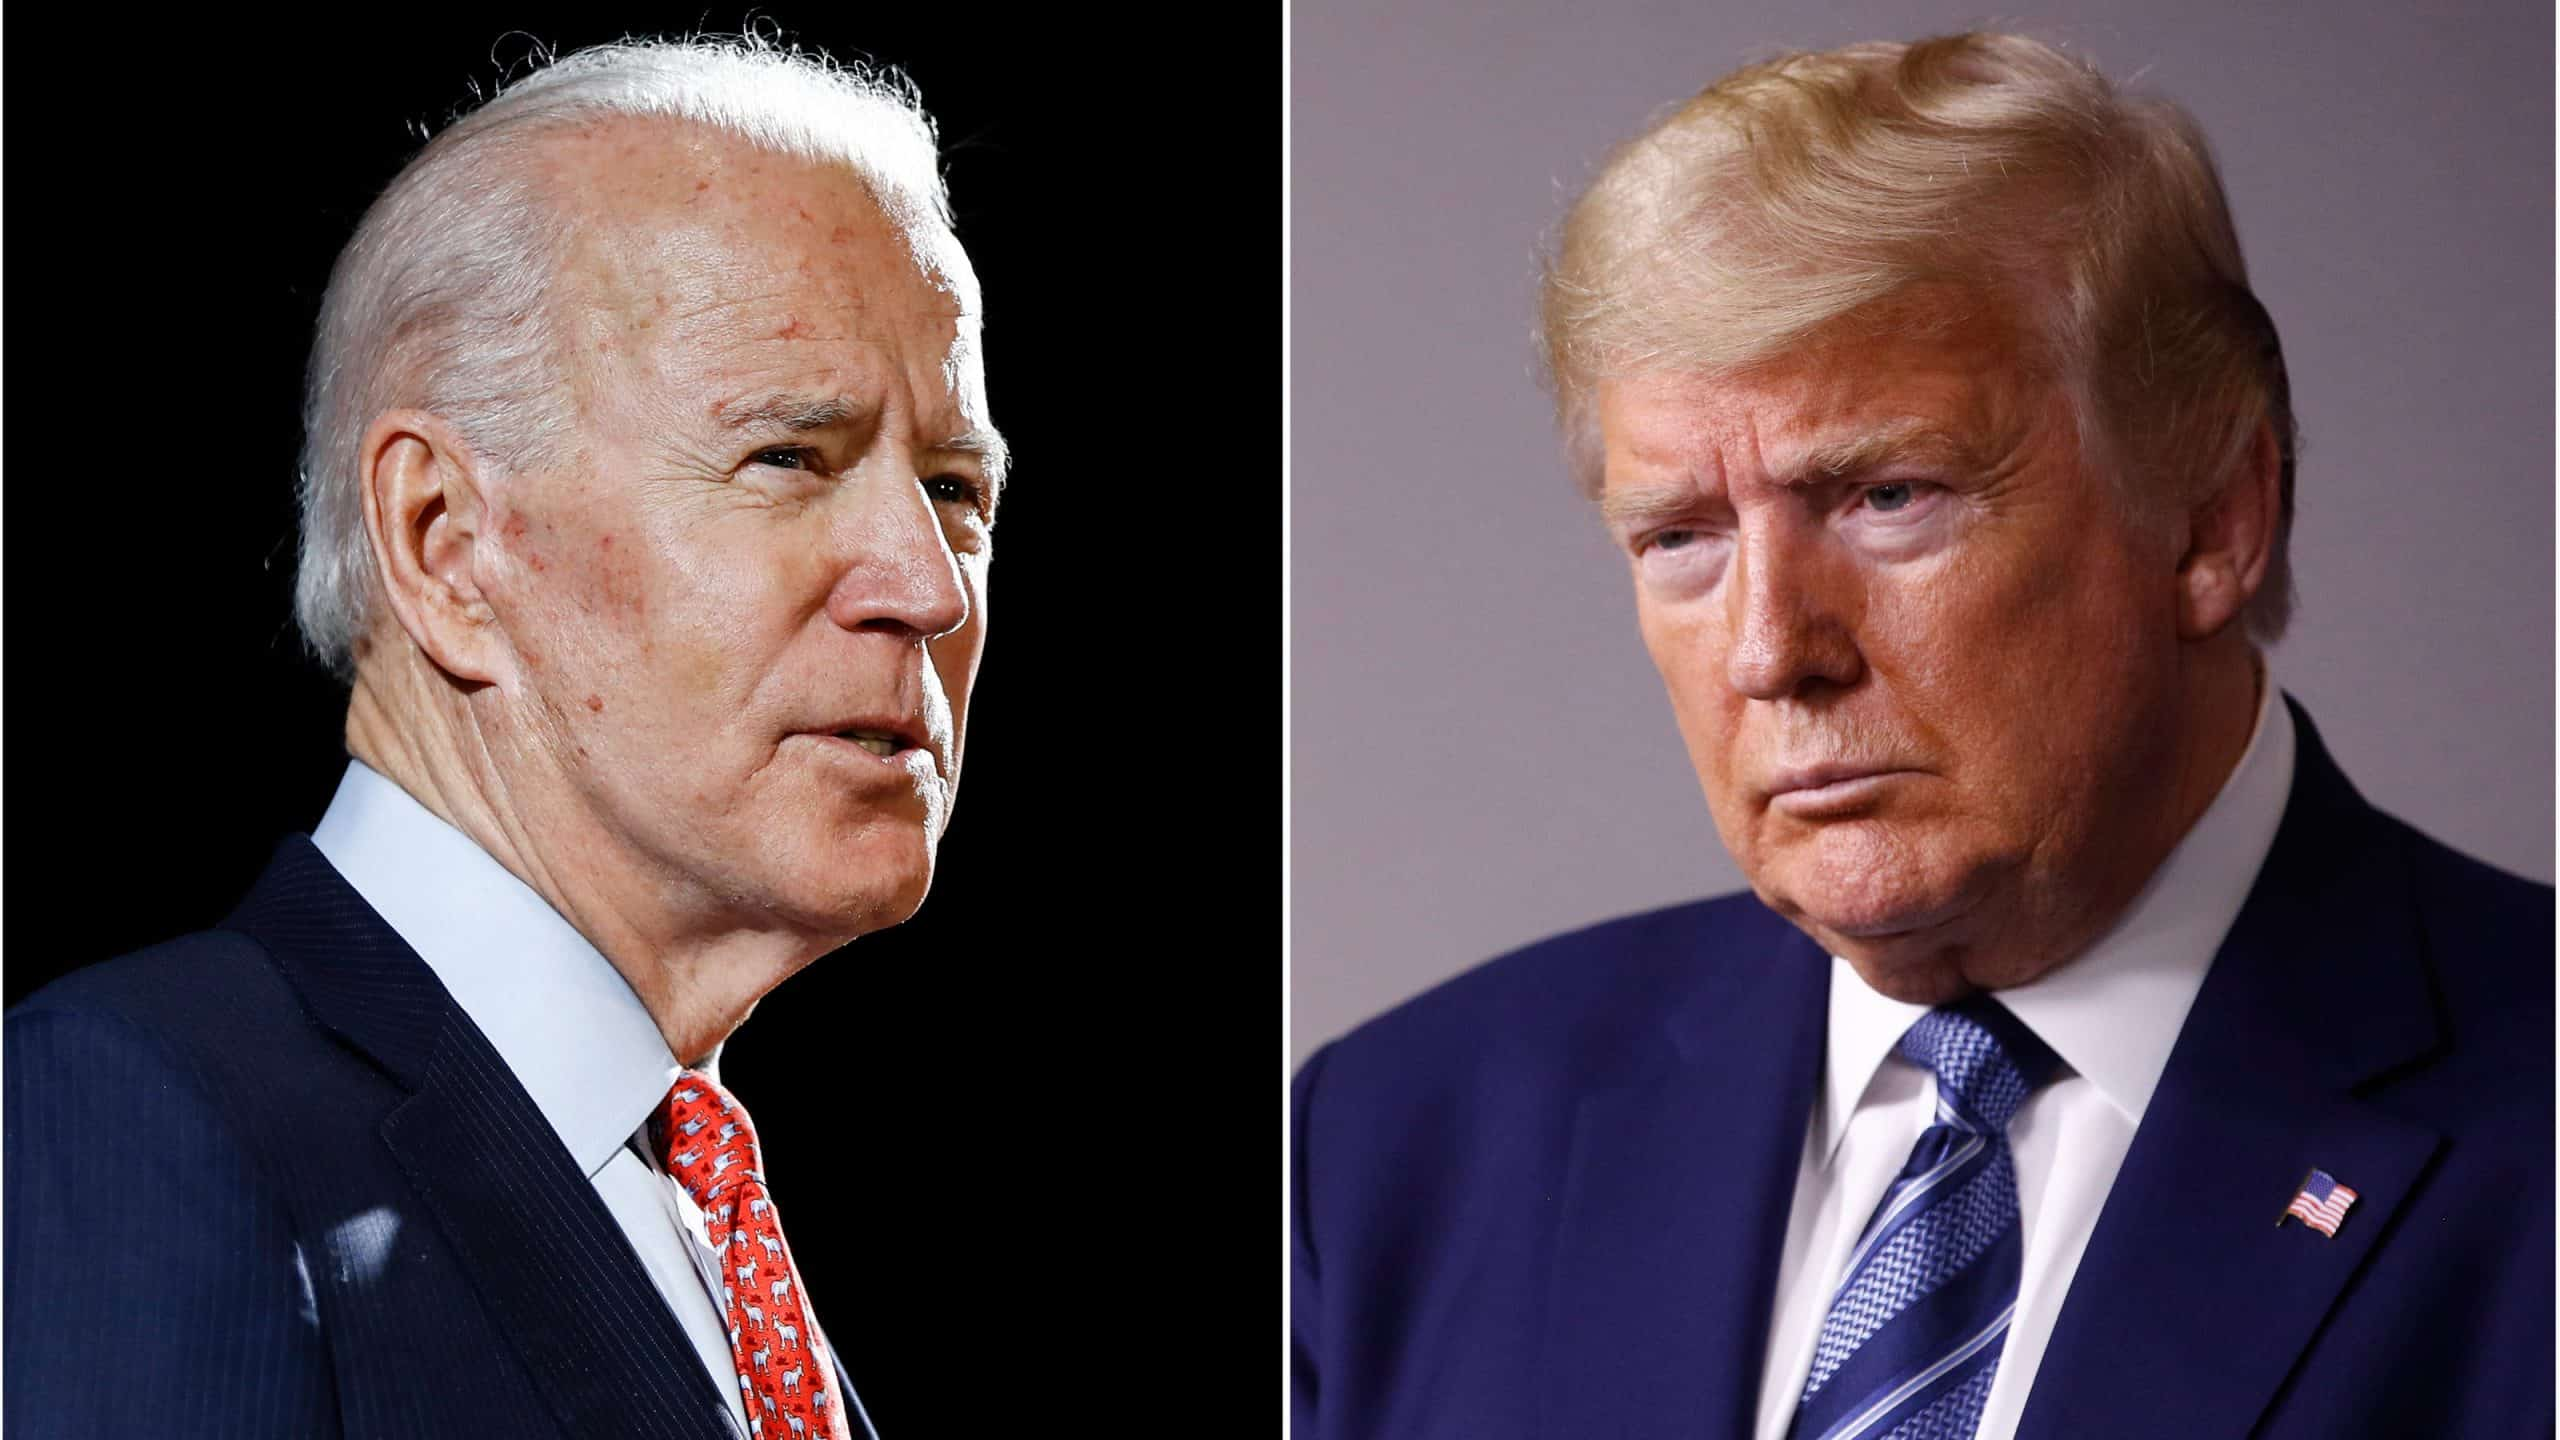 US President Donald Trump and Democratic presidential nominee Joe Biden participate in their final 2020 U.S. presidential campaign debate at Belmont University in Nashville, 4